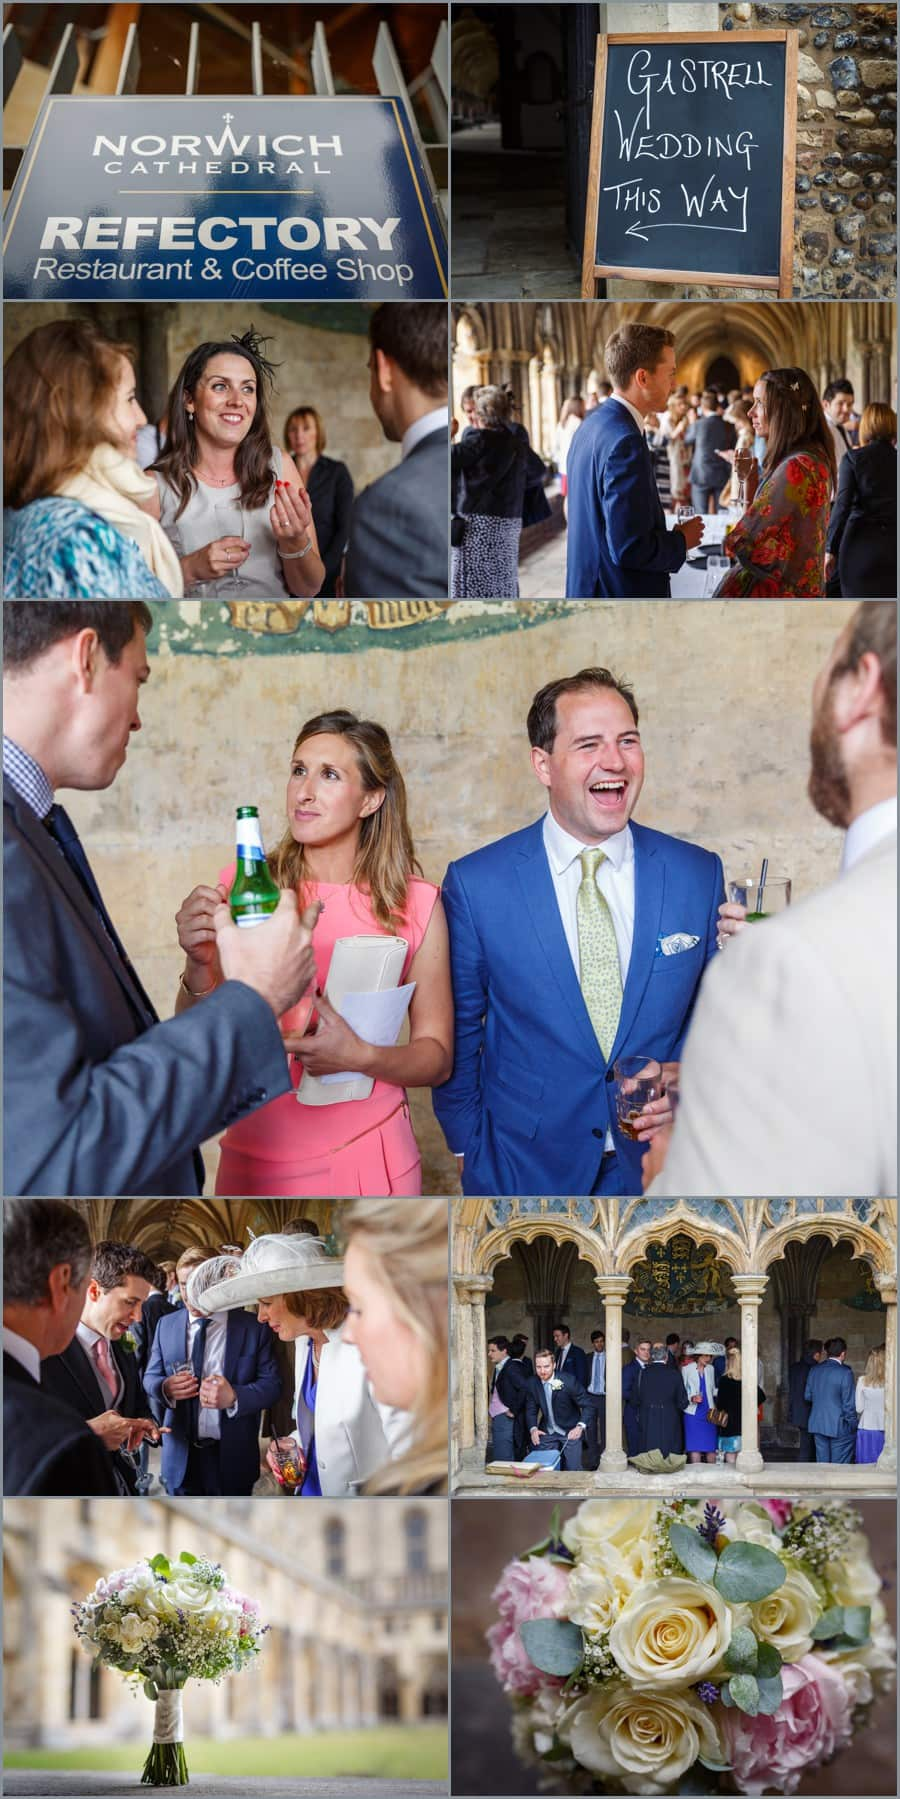 norwich-cathedral-wedding-photo-013